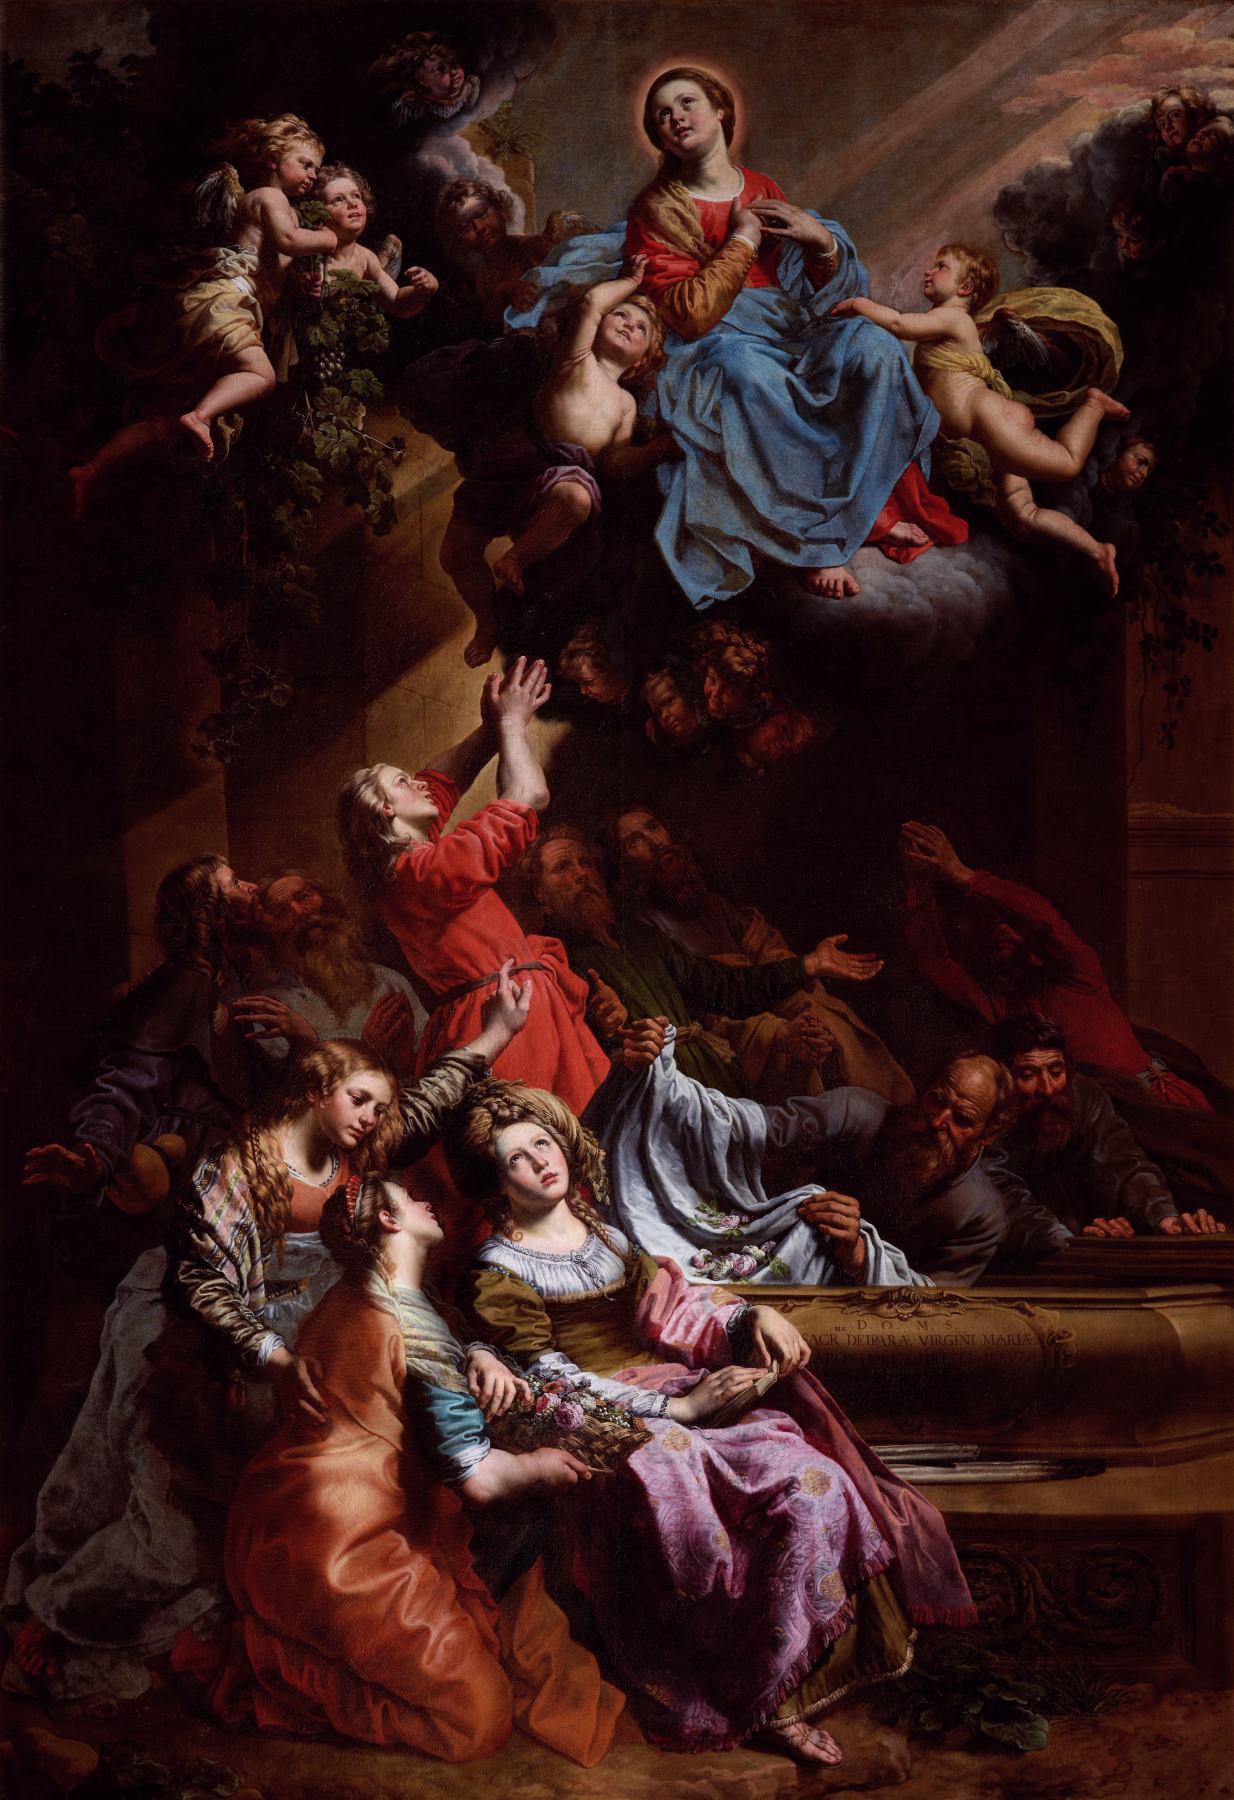 Theodore van loon. The Assumption of the Virgin Mary